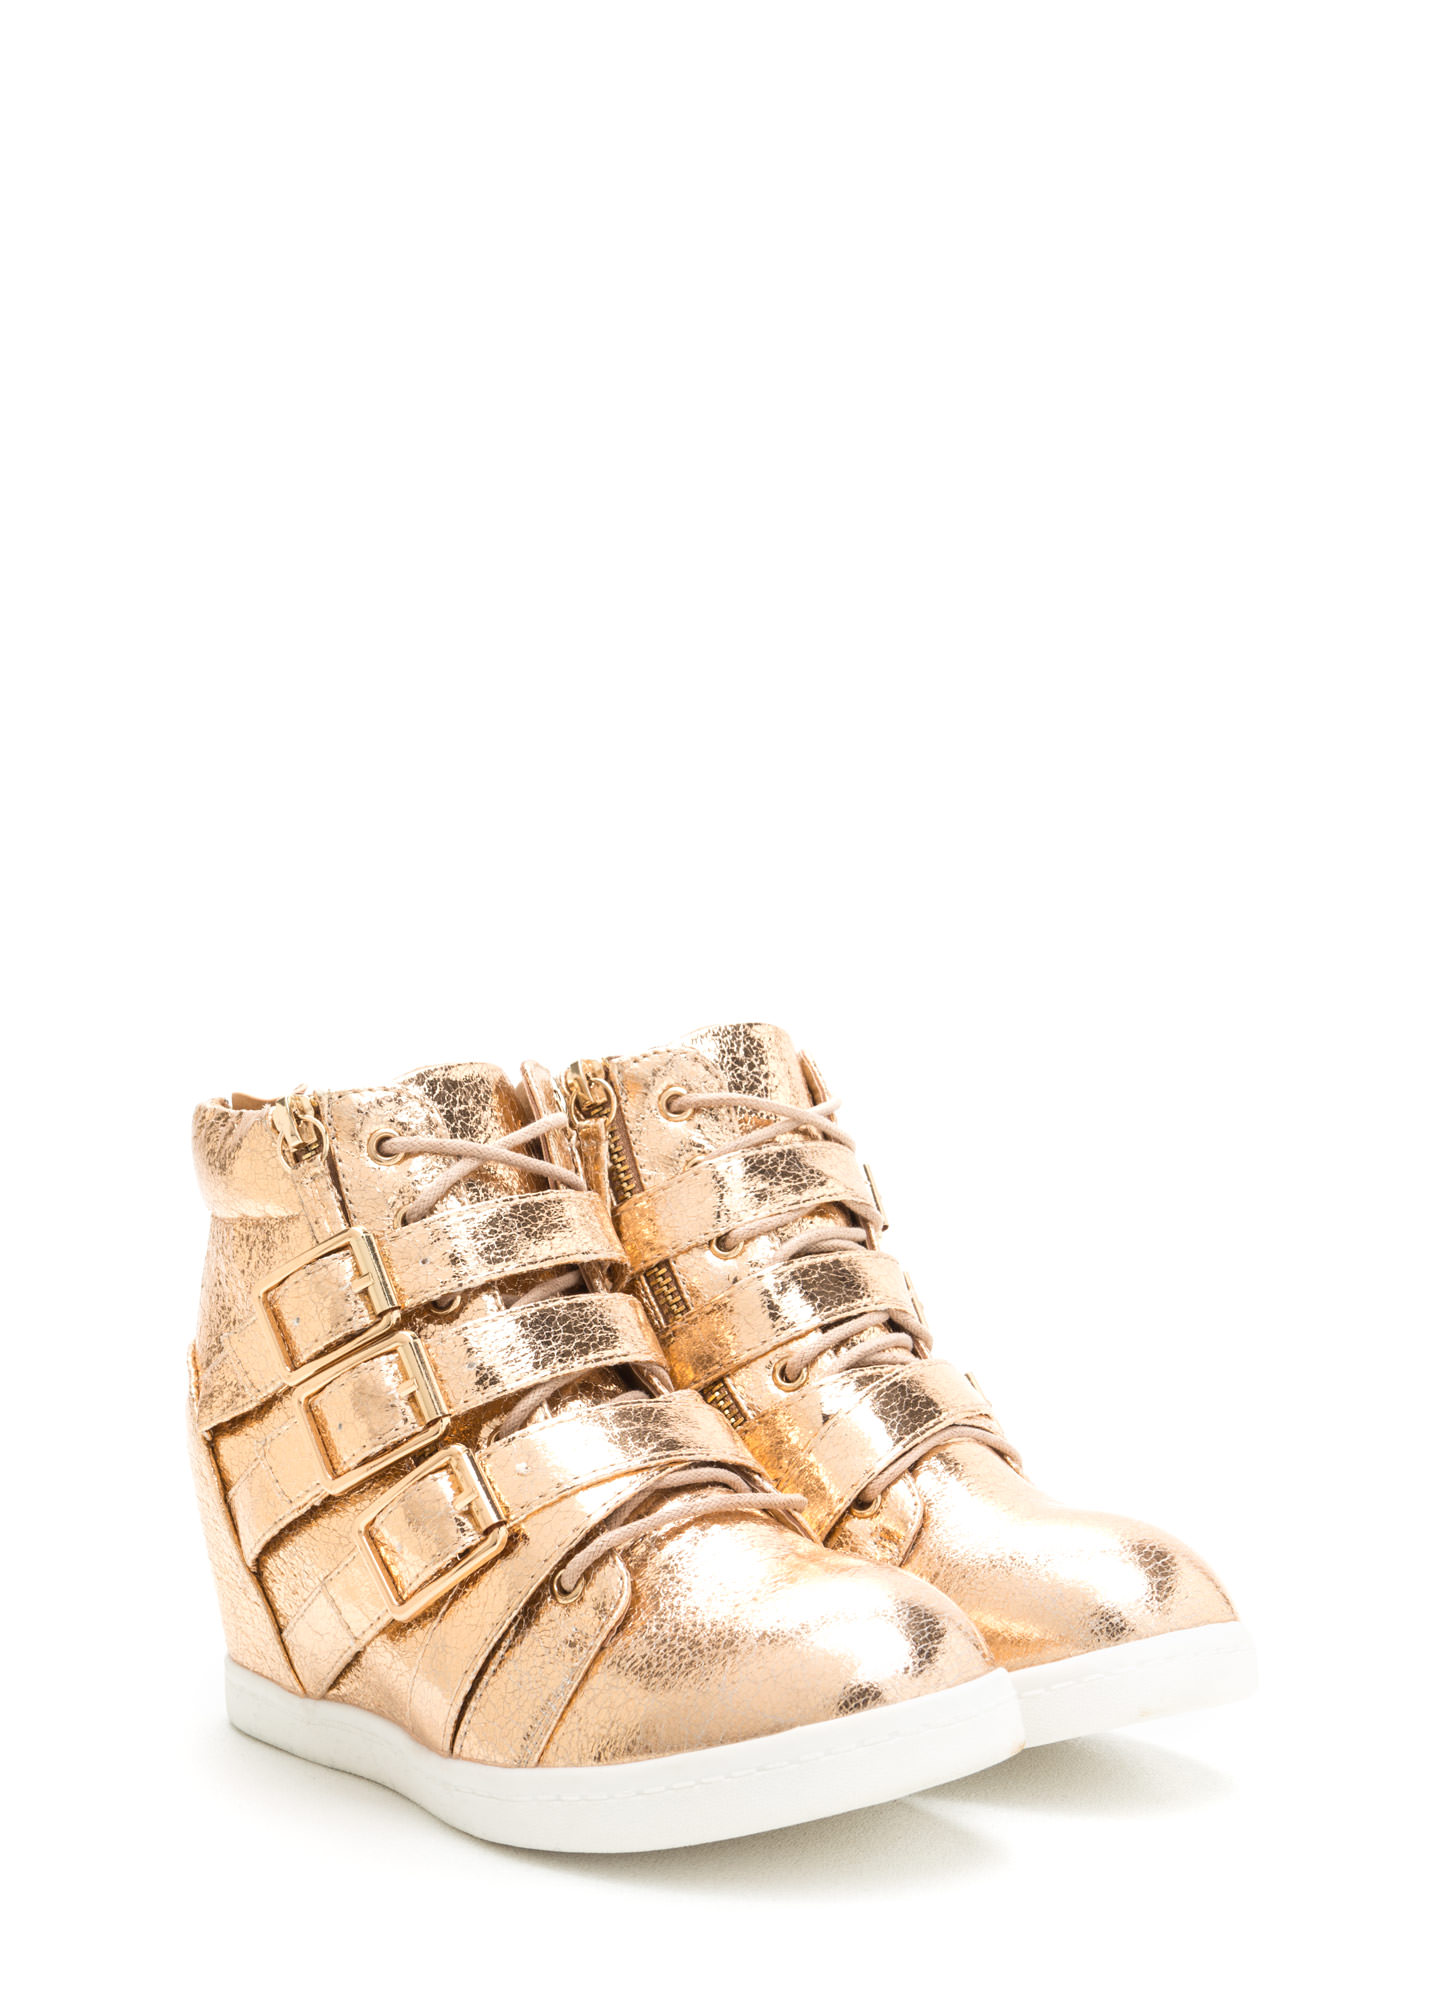 Bold 'N Buckled Sneaker Wedges ROSEGOLD